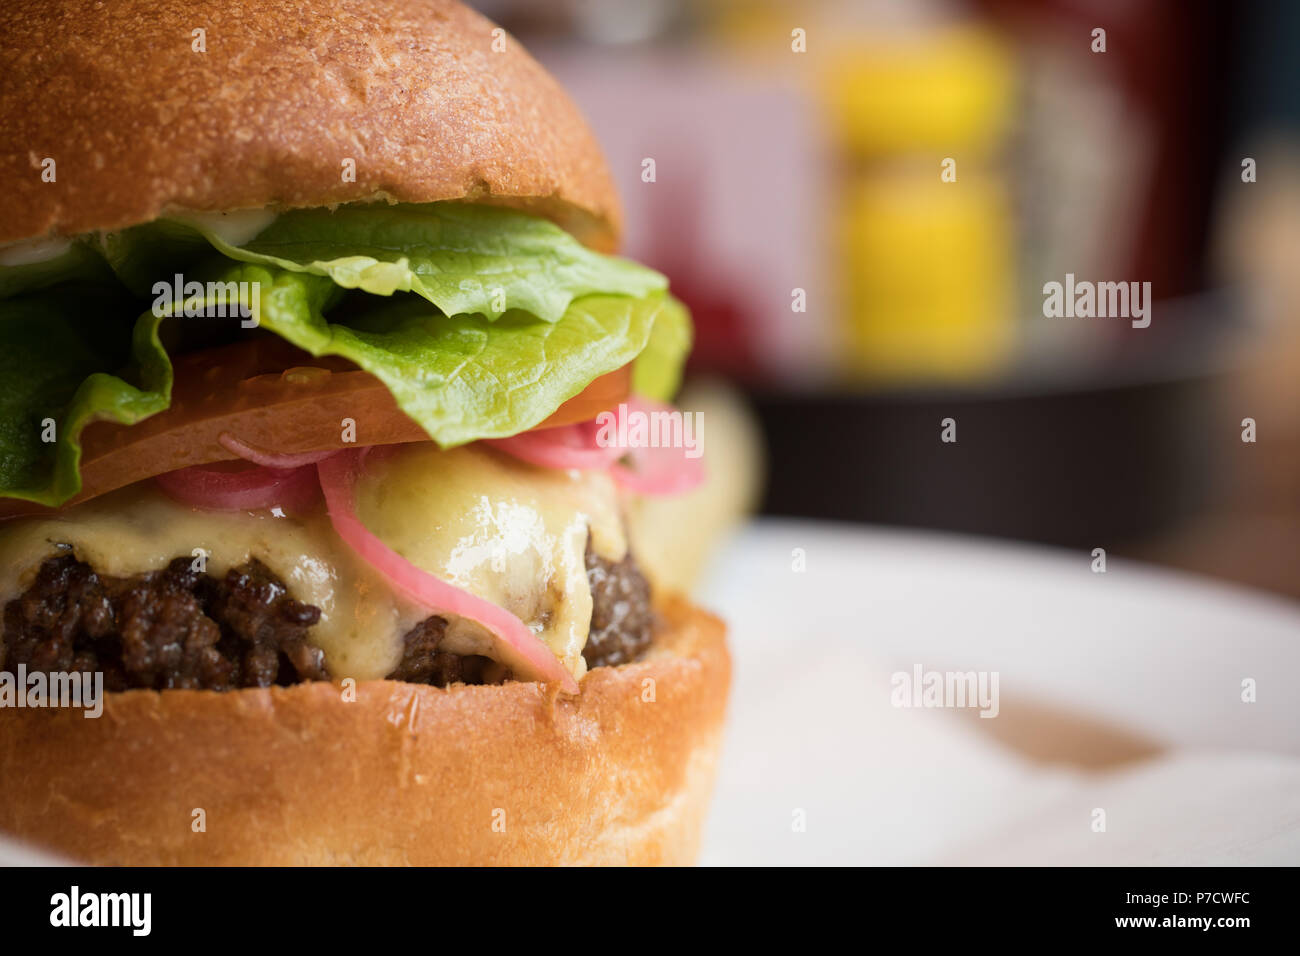 Burger served in a plate - Stock Image